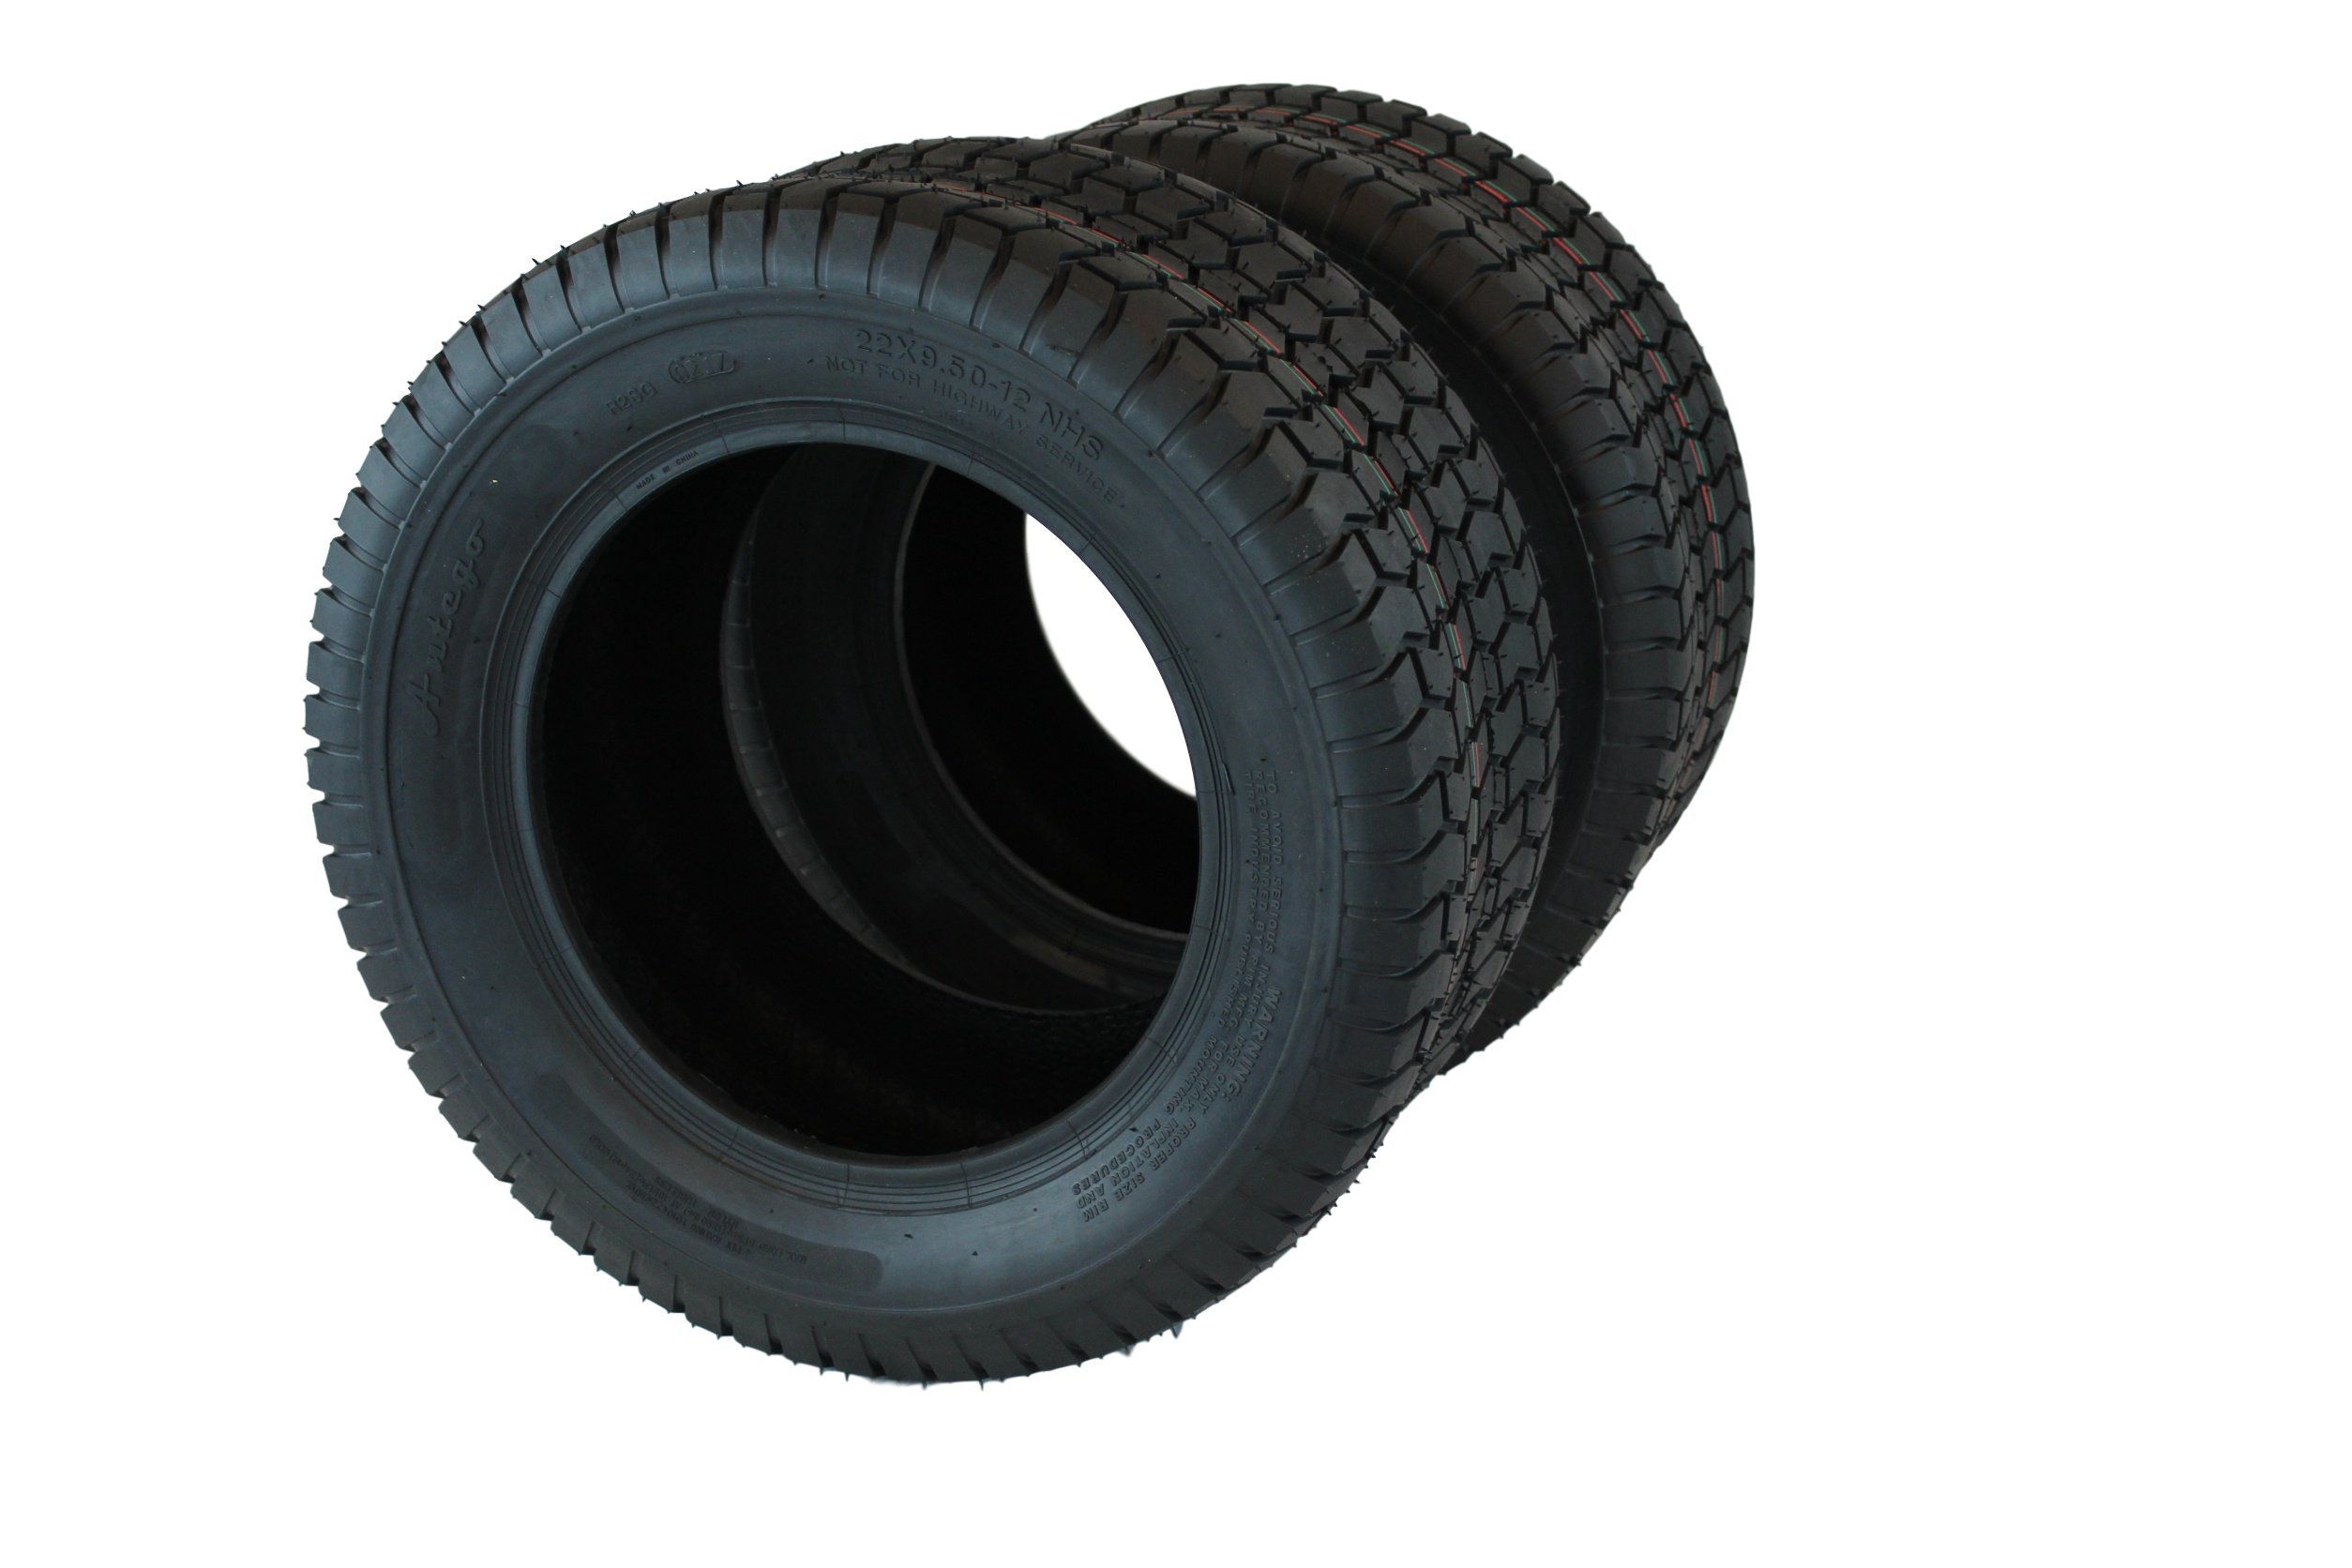 Set of Two 22x9.50-12 4 Ply Turf Tires for Lawn & Garden Mower (2) 22x9.5-12